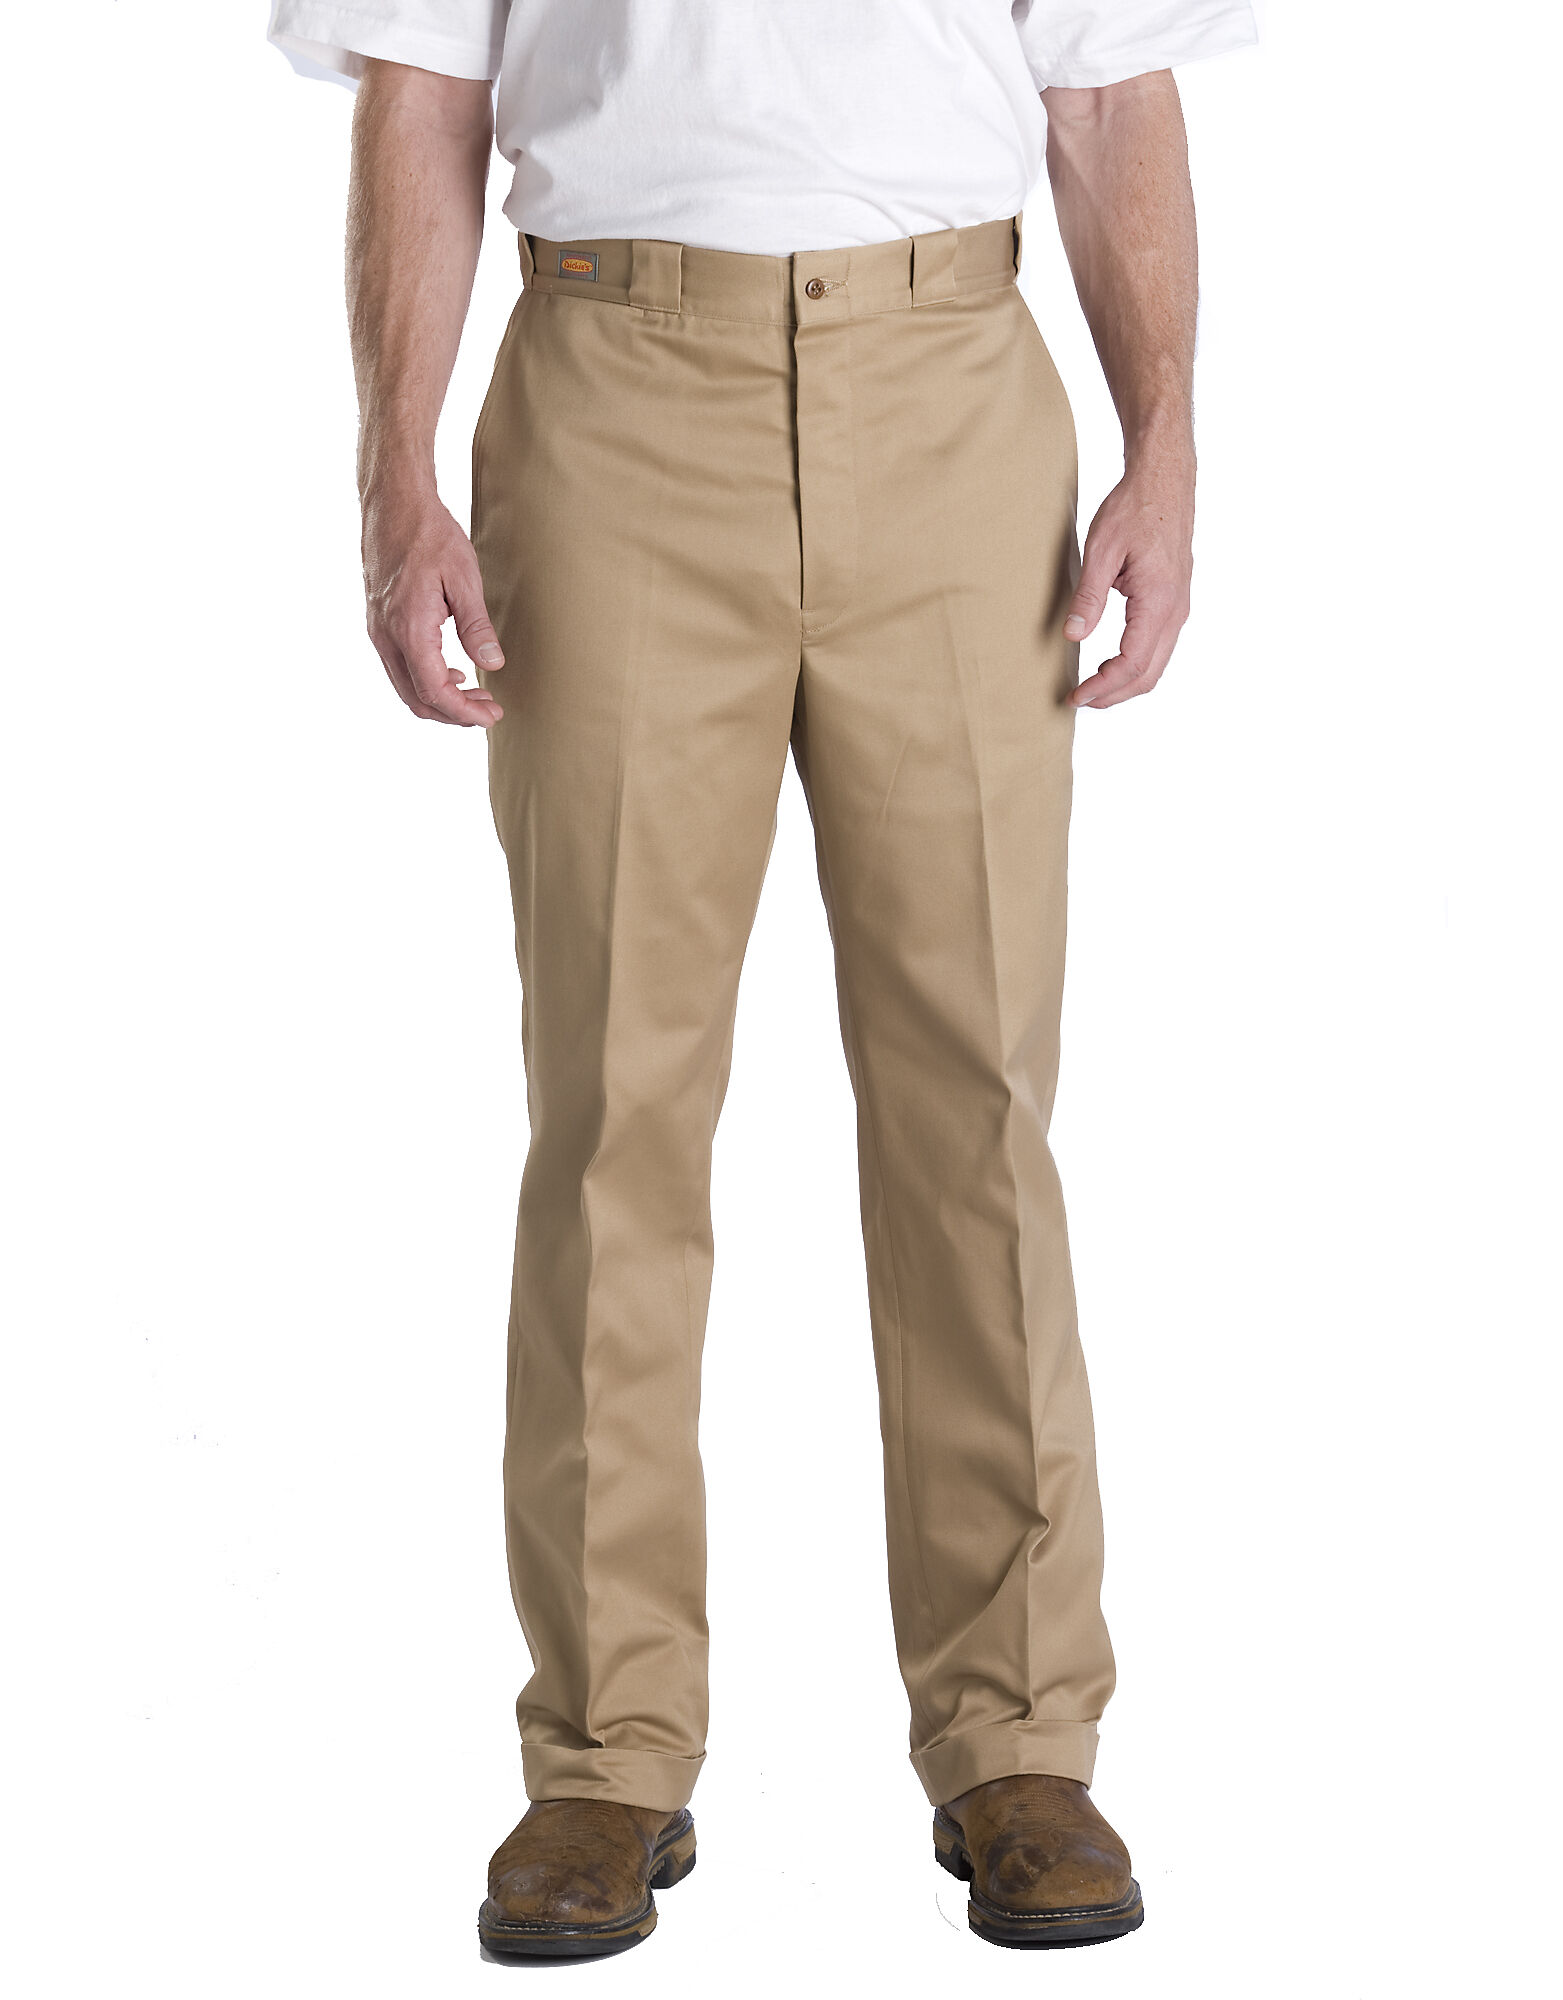 Expert Advice on Men's Dress Pants Men's dress pants are essential pieces in your wardrobe. Men who are tall and lanky look better in cuffed dress pants. Shorter men should stay away from cuffs unless they are wearing pleated pants. No-cuff pants elongate the .